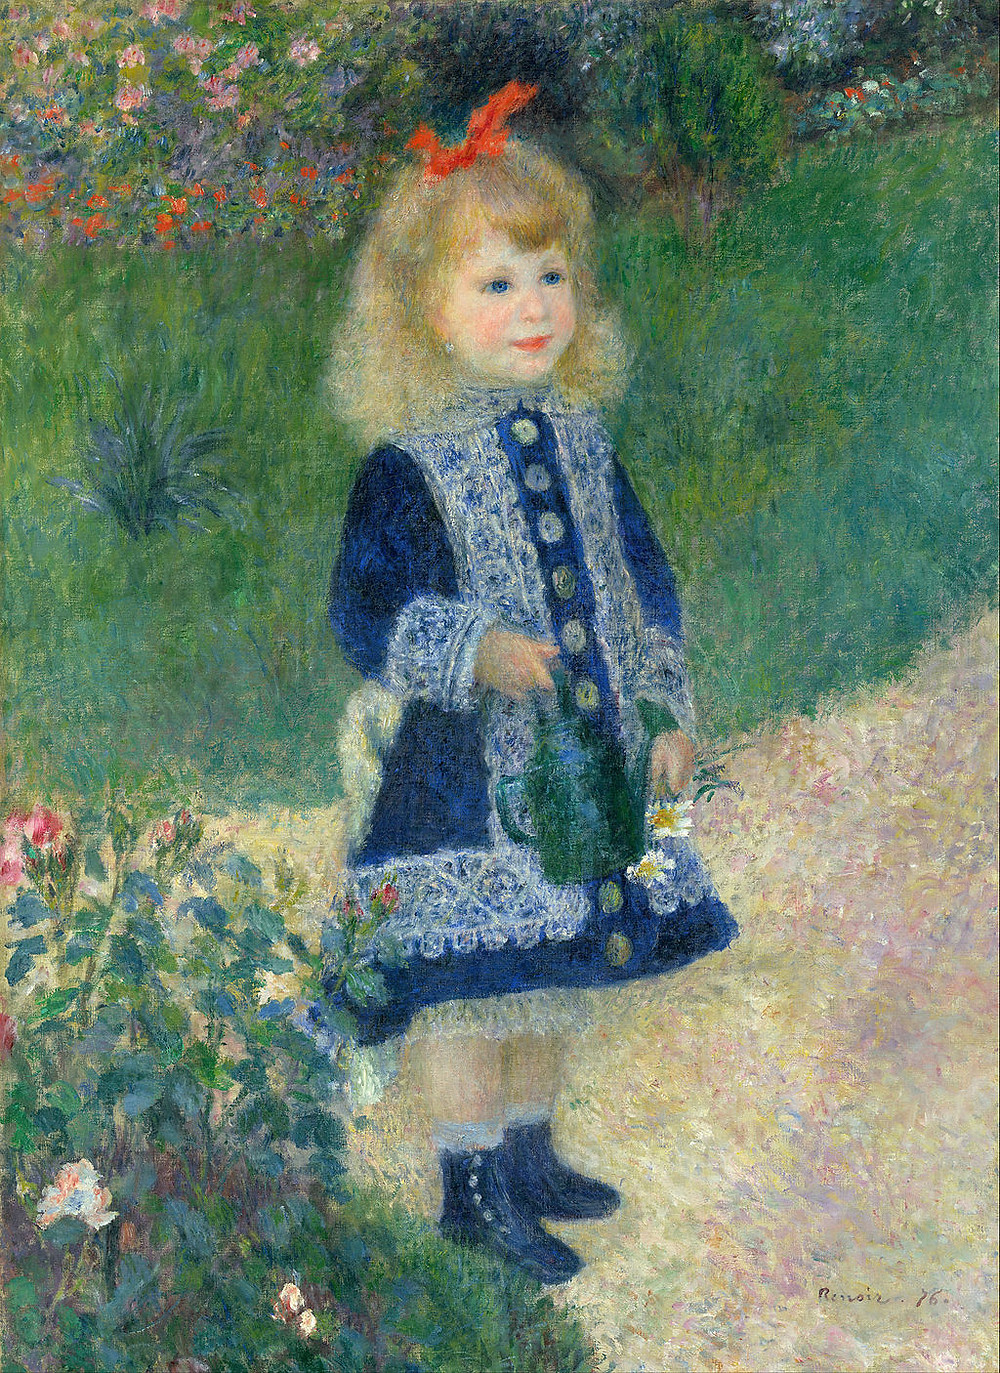 a rosy cheeked girl by Renoir